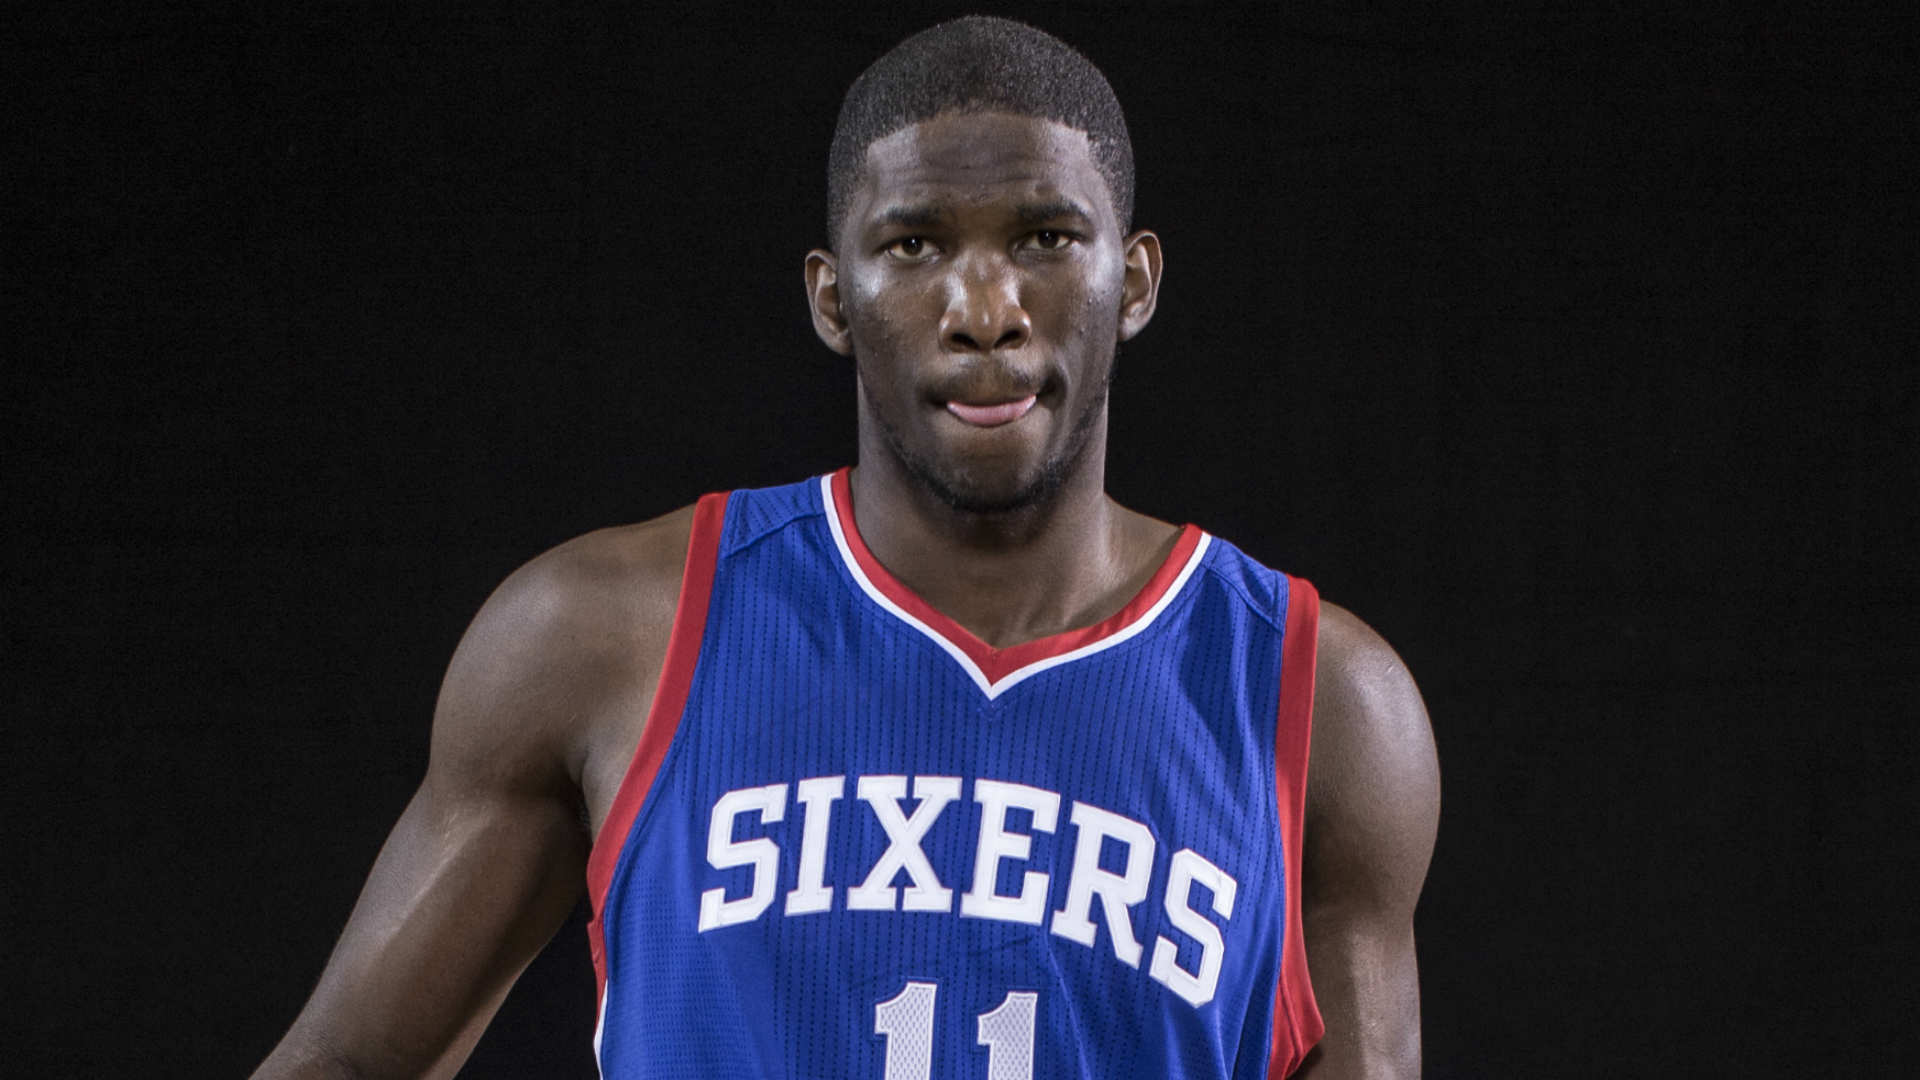 Embiid-Joel-06192015-US-News-Getty-FTR